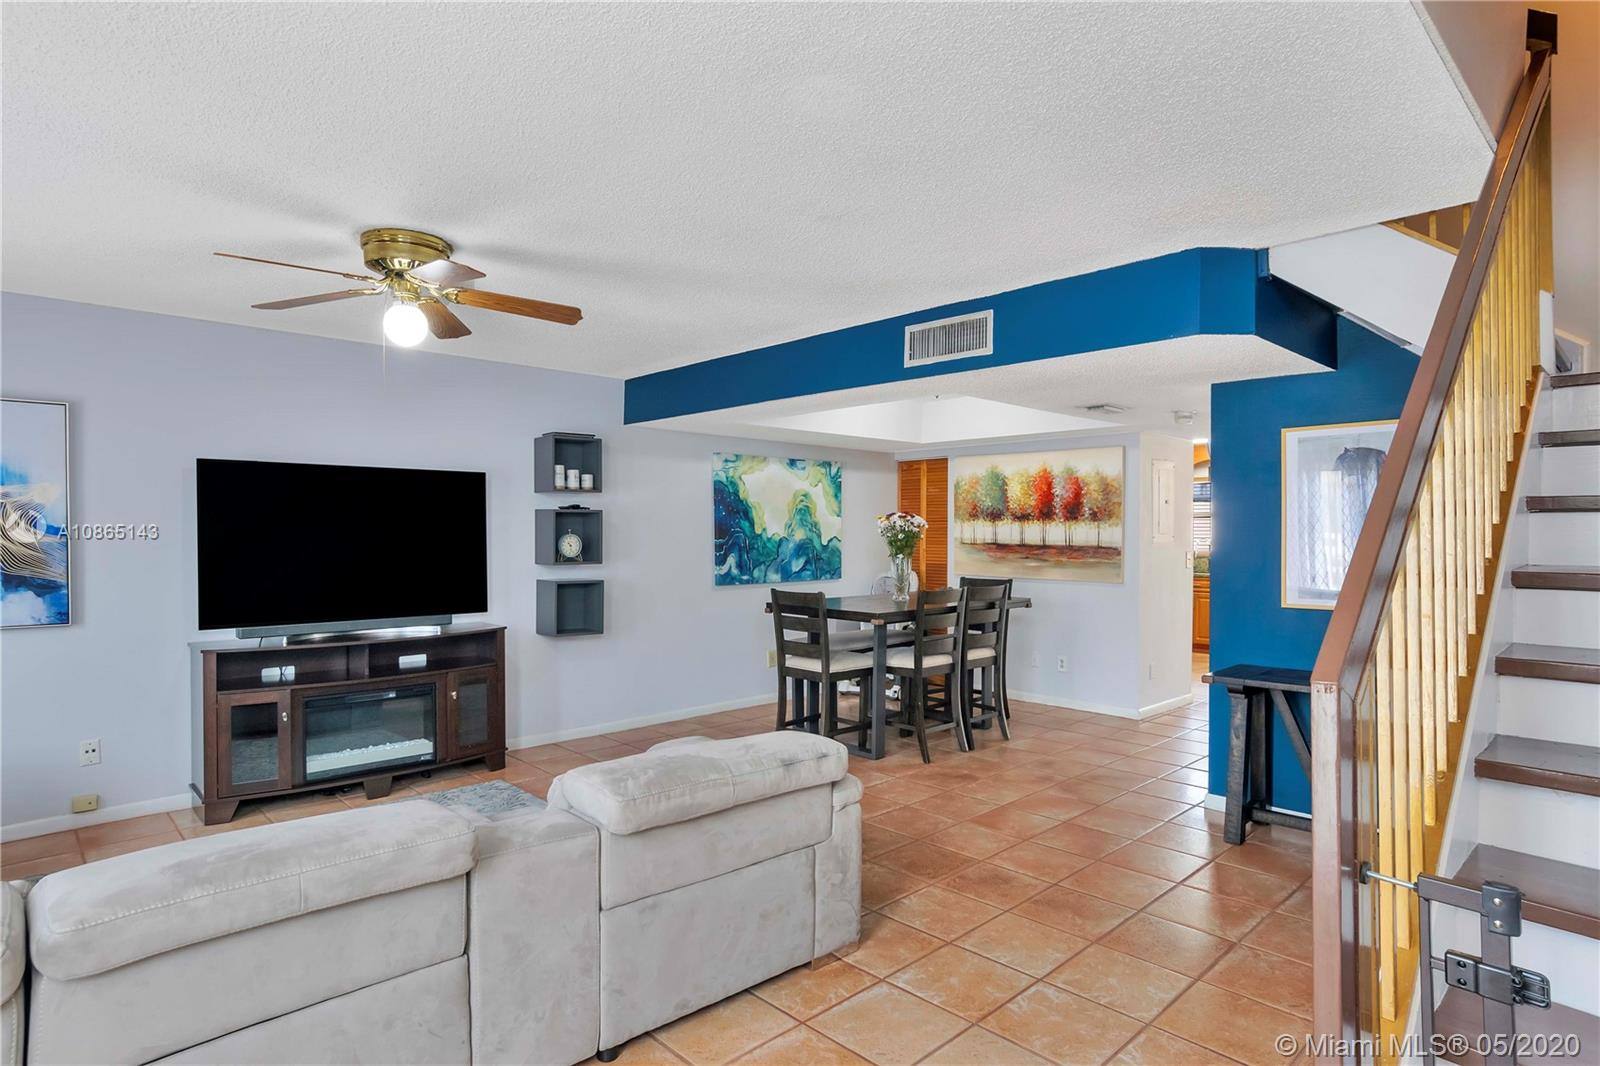 VERY SPACIOUS 3 BEDROOM / 2.5 BATH TOWNHOUSE IN FLAMINGO VILLAS ~ UPDATED KITCHEN WITH A SIT DOWN BAR AREA, GRANITE COUNTER TOPS, AND PANTRY ~ HALF BATH DOWNSTAIRS WITH LAUNDRY ~ ALL OF THE BEDROOMS ARE UPSTAIRS AND QUITE SPACIOUS AS WELL ~ FAMILY ROOM NEXT TO KITCHEN AND FORMAL DINING ROOM ~ SCREENED IN PRIVATE PATIO AREA ~ COMMUNITY HAS POOL AREA WITH PLENTY TO DO ~ GREAT LOCATION IN PEMBROKE PINES, CENTRALLY LOCATED NEAR SHOPPING, DINING, SCHOOLS, HIGHWAYS AND SO MUCH MORE....